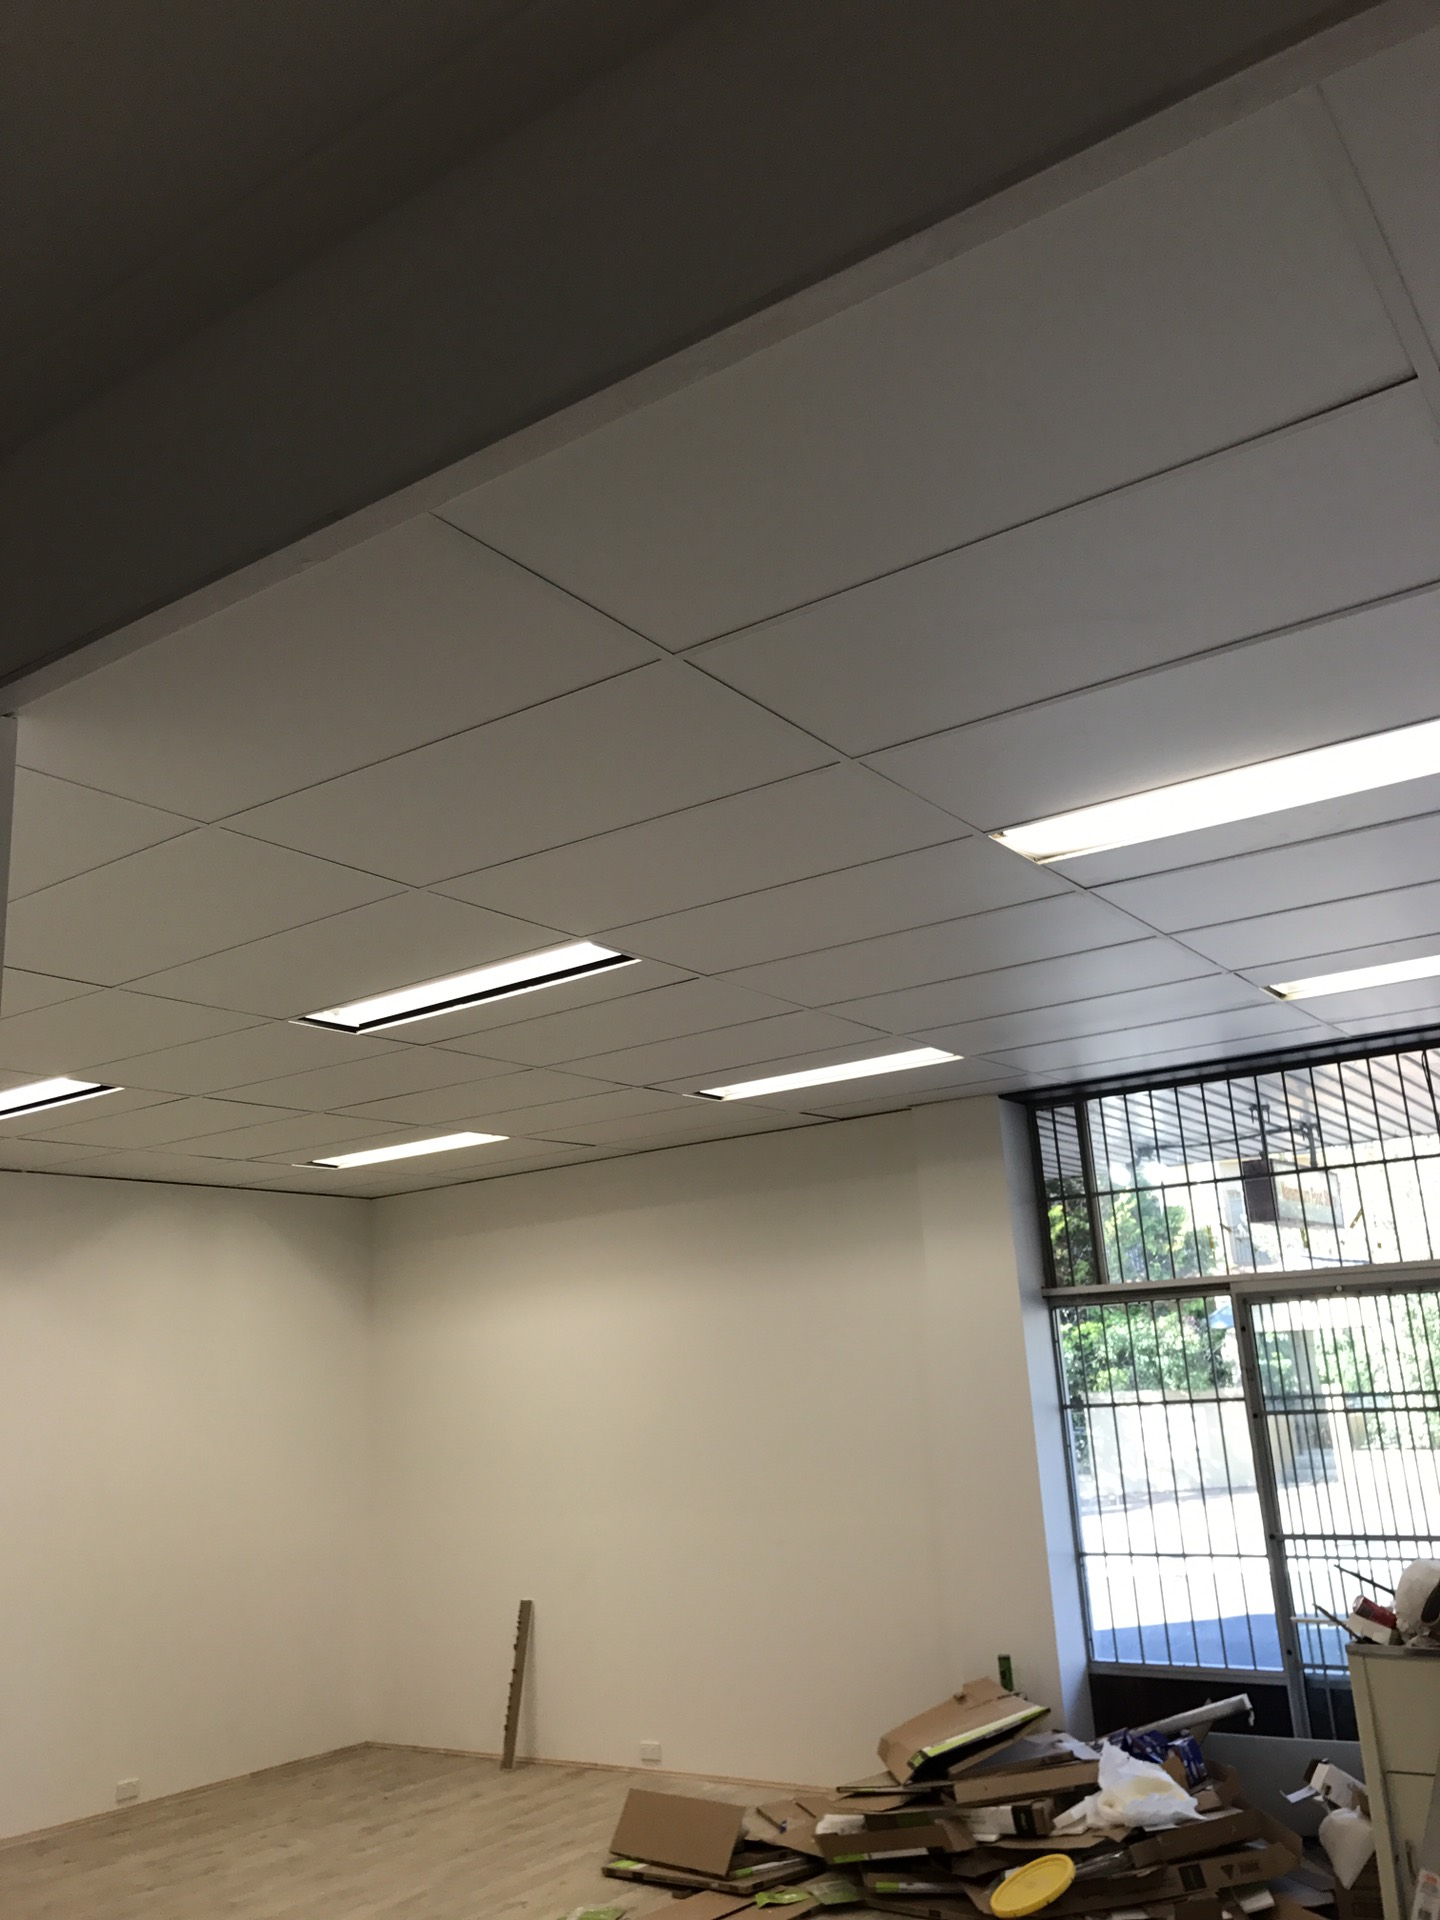 Sydney plastering group david degiorgio 11 projects 1 review new furring channel walls with 13mm plasterboard grid ceiling with vynal tiles naremburn nsw dailygadgetfo Gallery